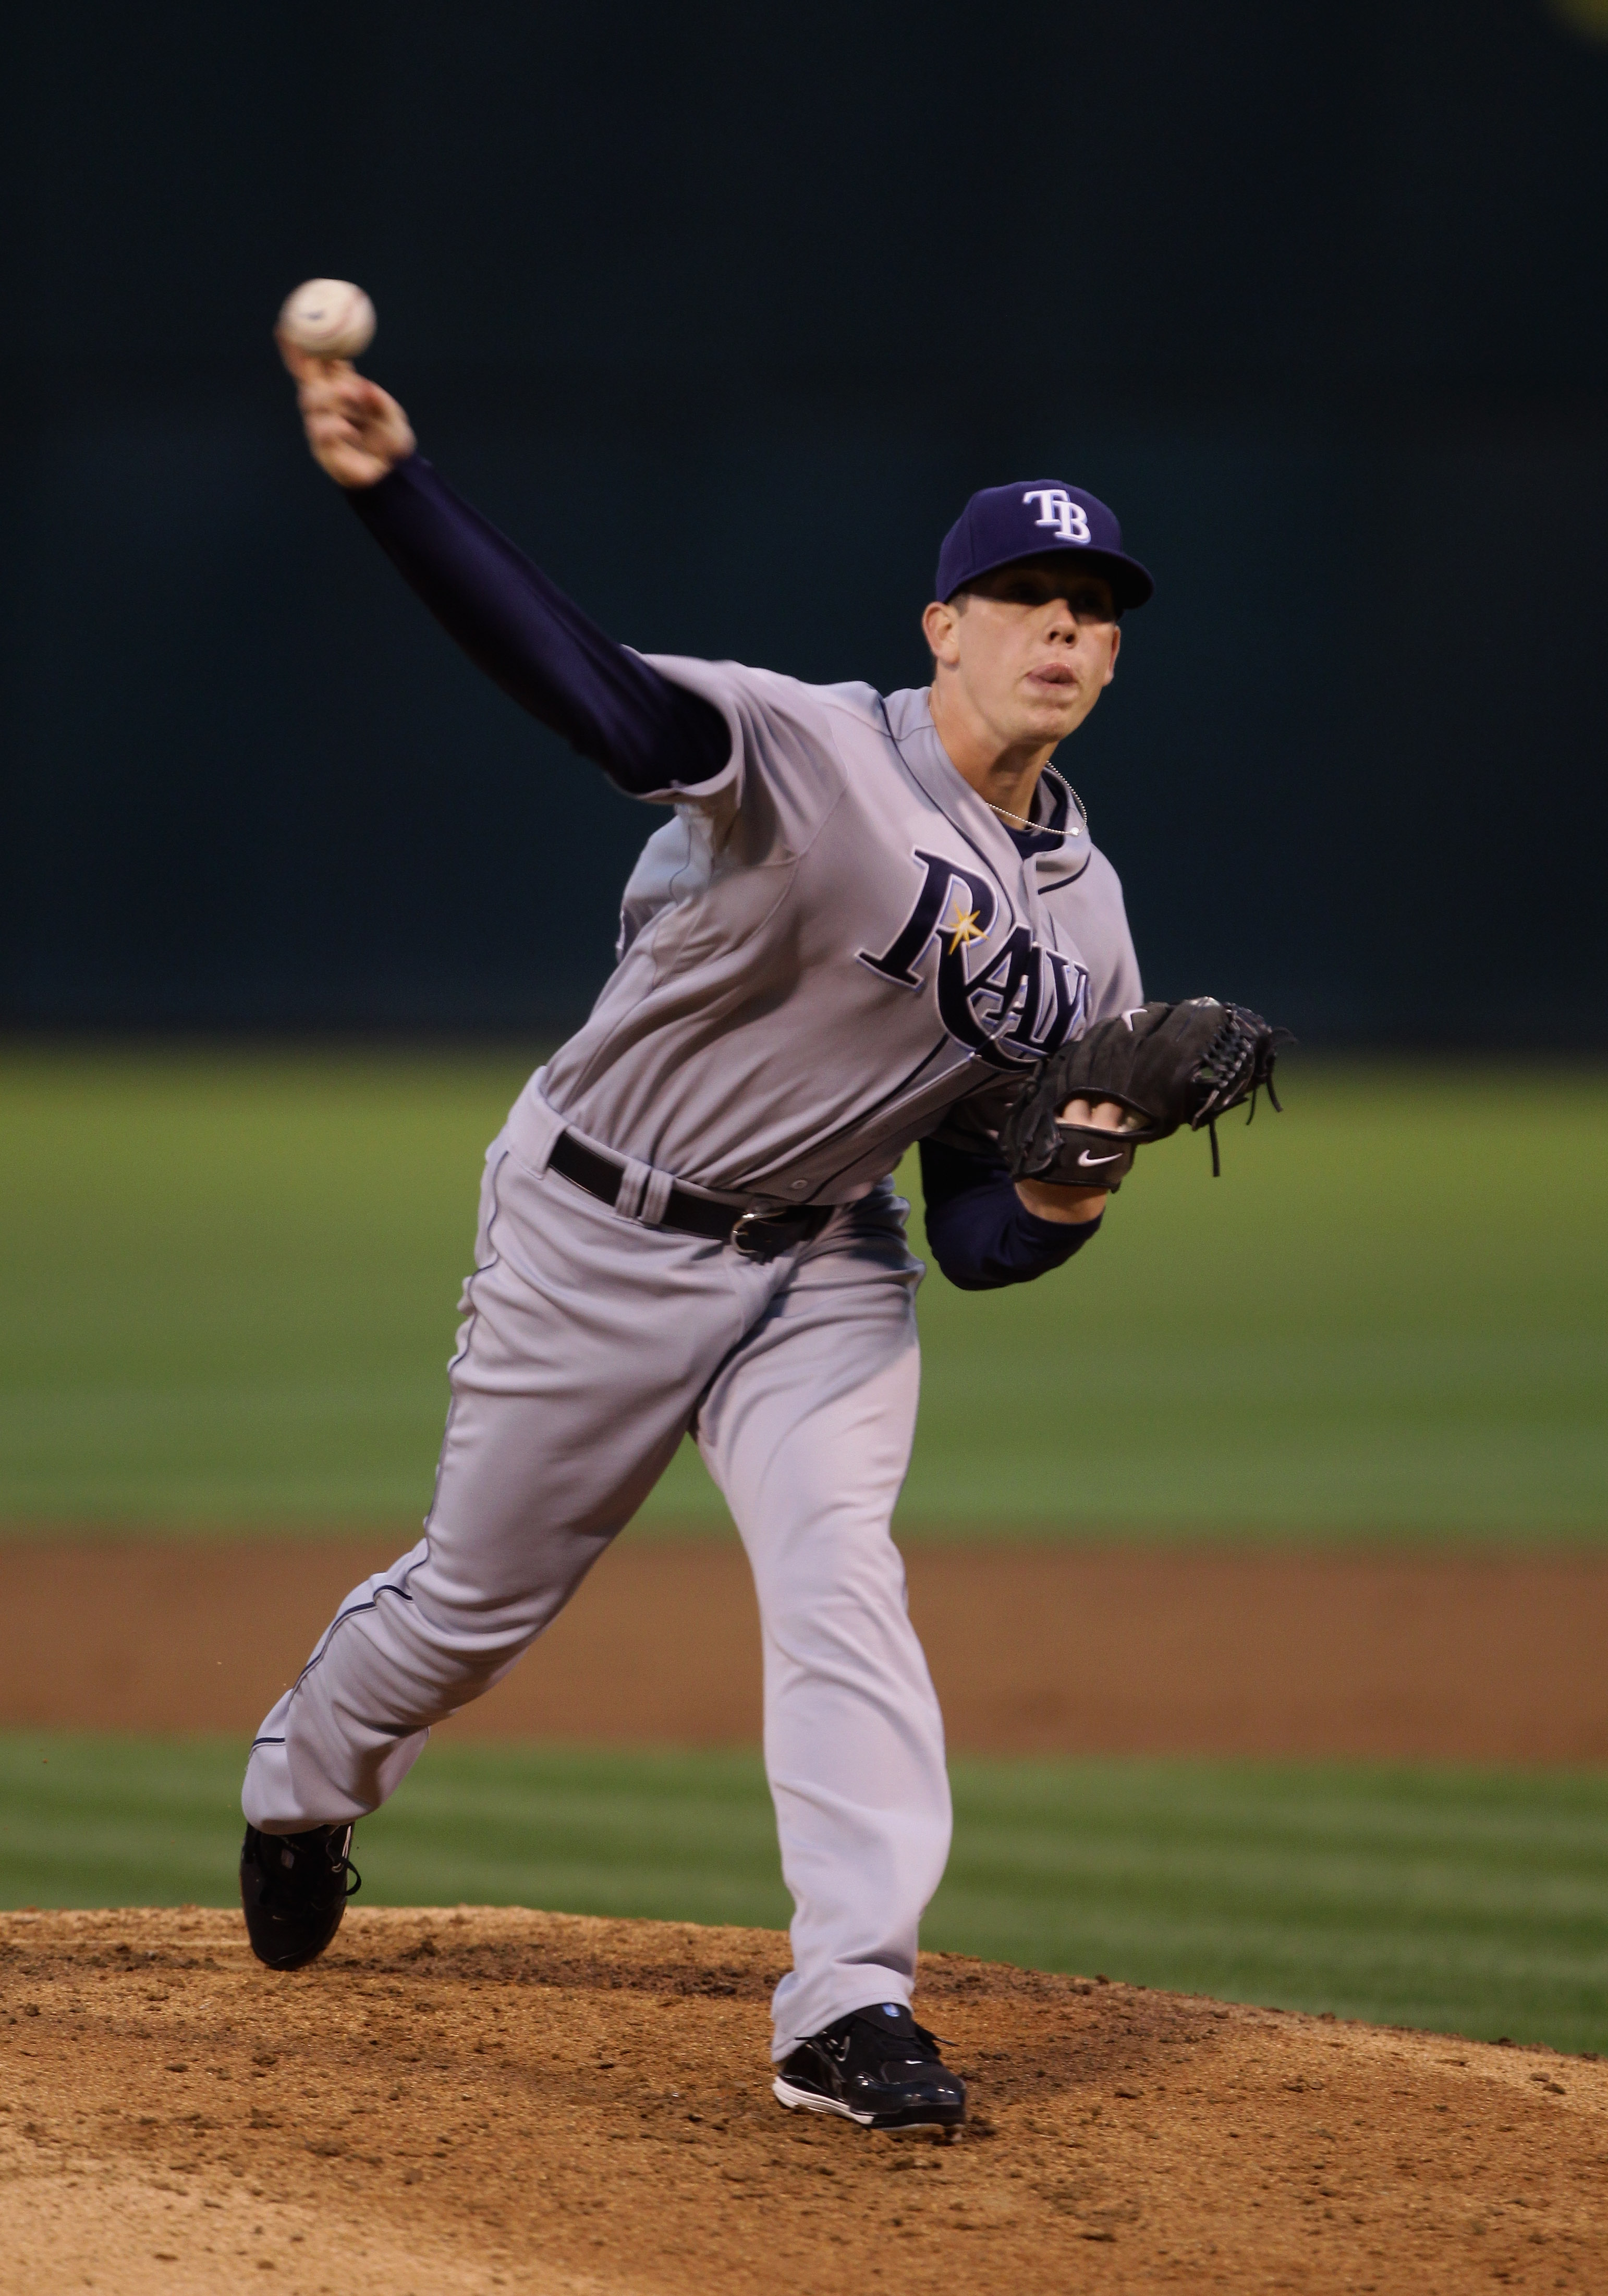 OAKLAND, CA - AUGUST 20:  Jeremy Hellickson #58 of the Tampa Bay Rays pitches against the Oakland Athletics at the Oakland-Alameda County Coliseum  on August 20, 2010 in Oakland, California.  (Photo by Ezra Shaw/Getty Images)